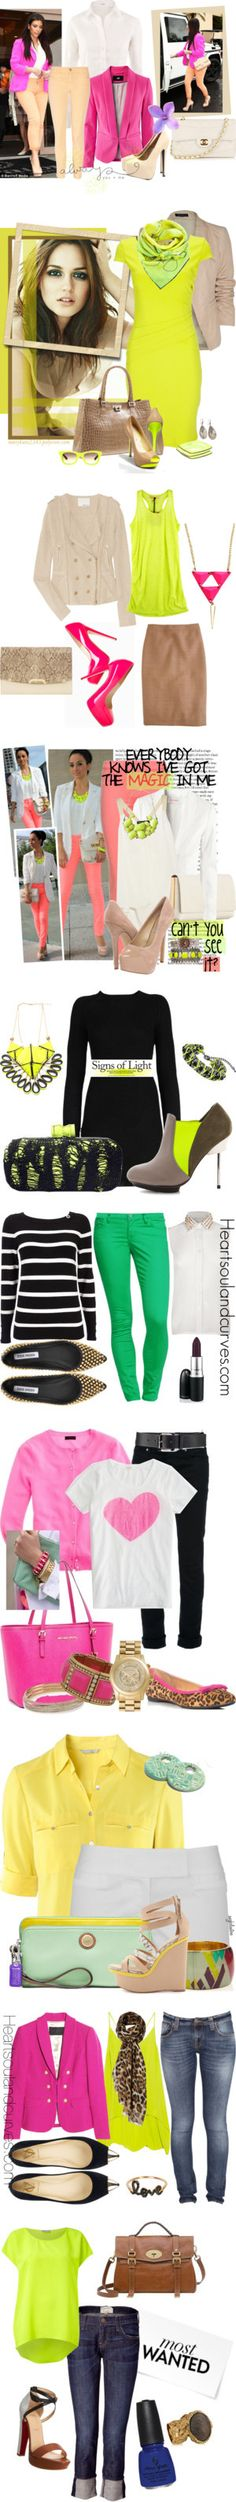 """Neon"" by gbean425 on Polyvore"